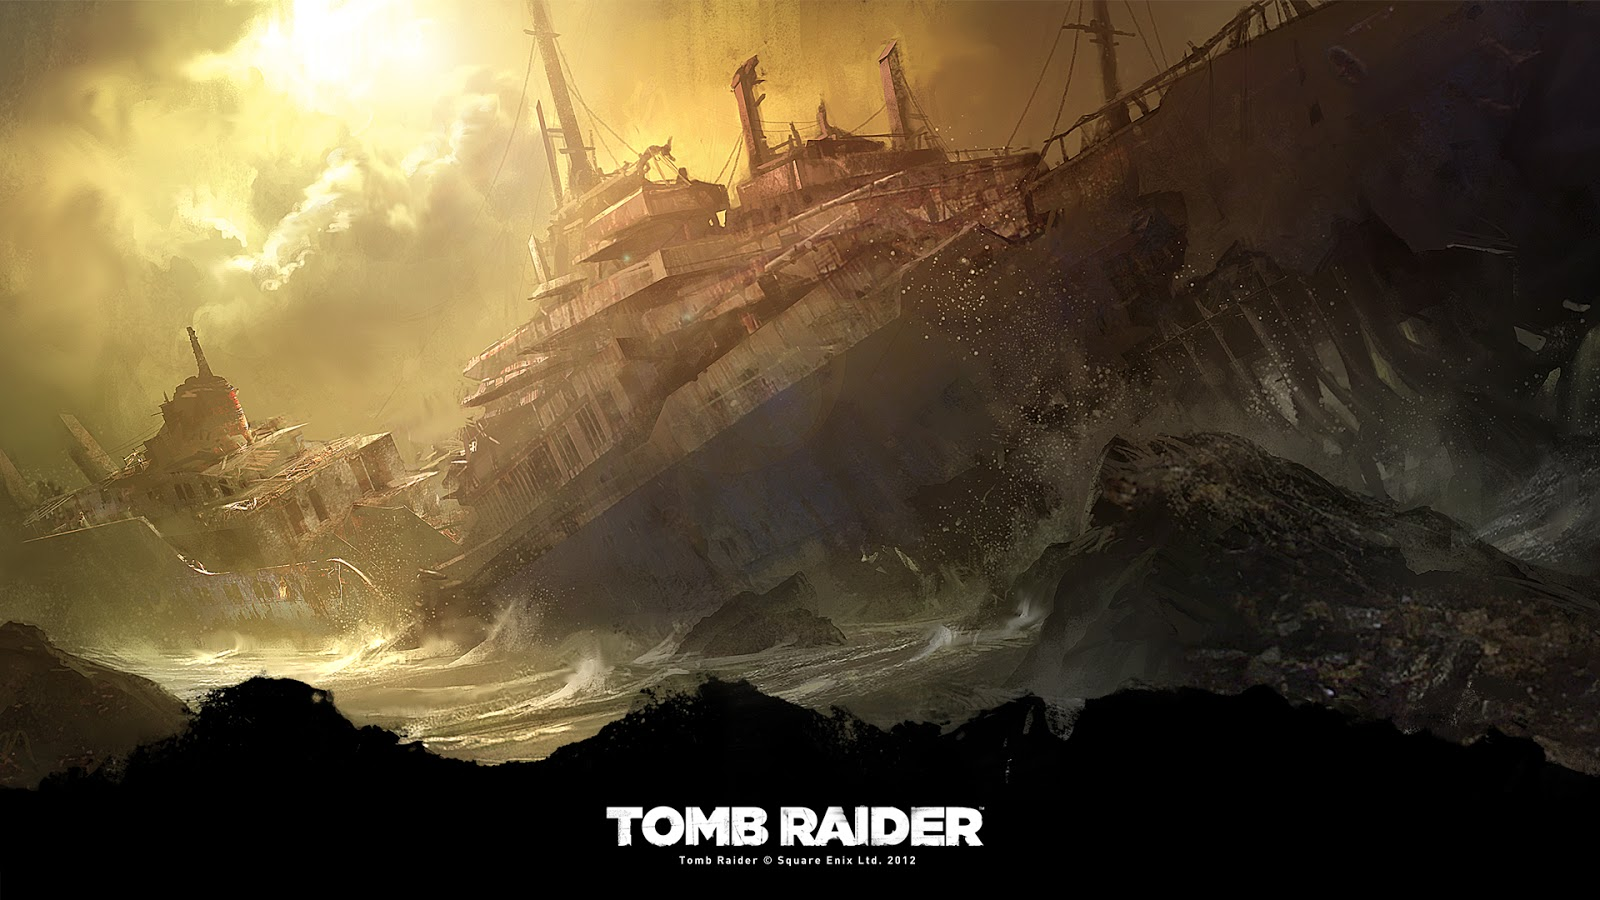 Tomb Raider HD & Widescreen Wallpaper 0.498860601970645